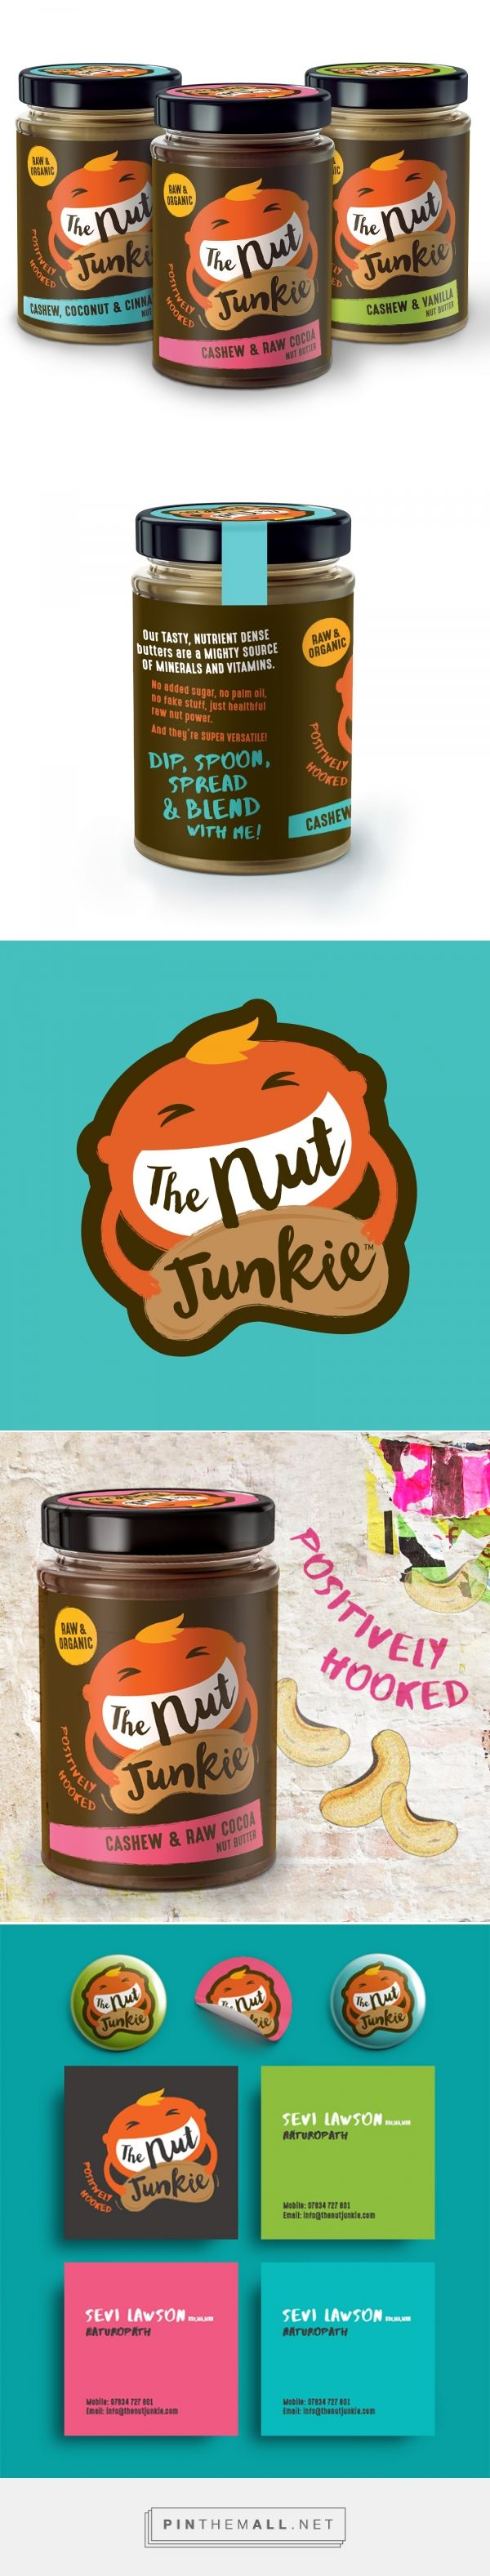 A Nutty Little Challenger packaging design by Family (and friends) Branding and Packaging Design - http://www.packagingoftheworld.com/2017/03/a-nutty-little-challenger.html